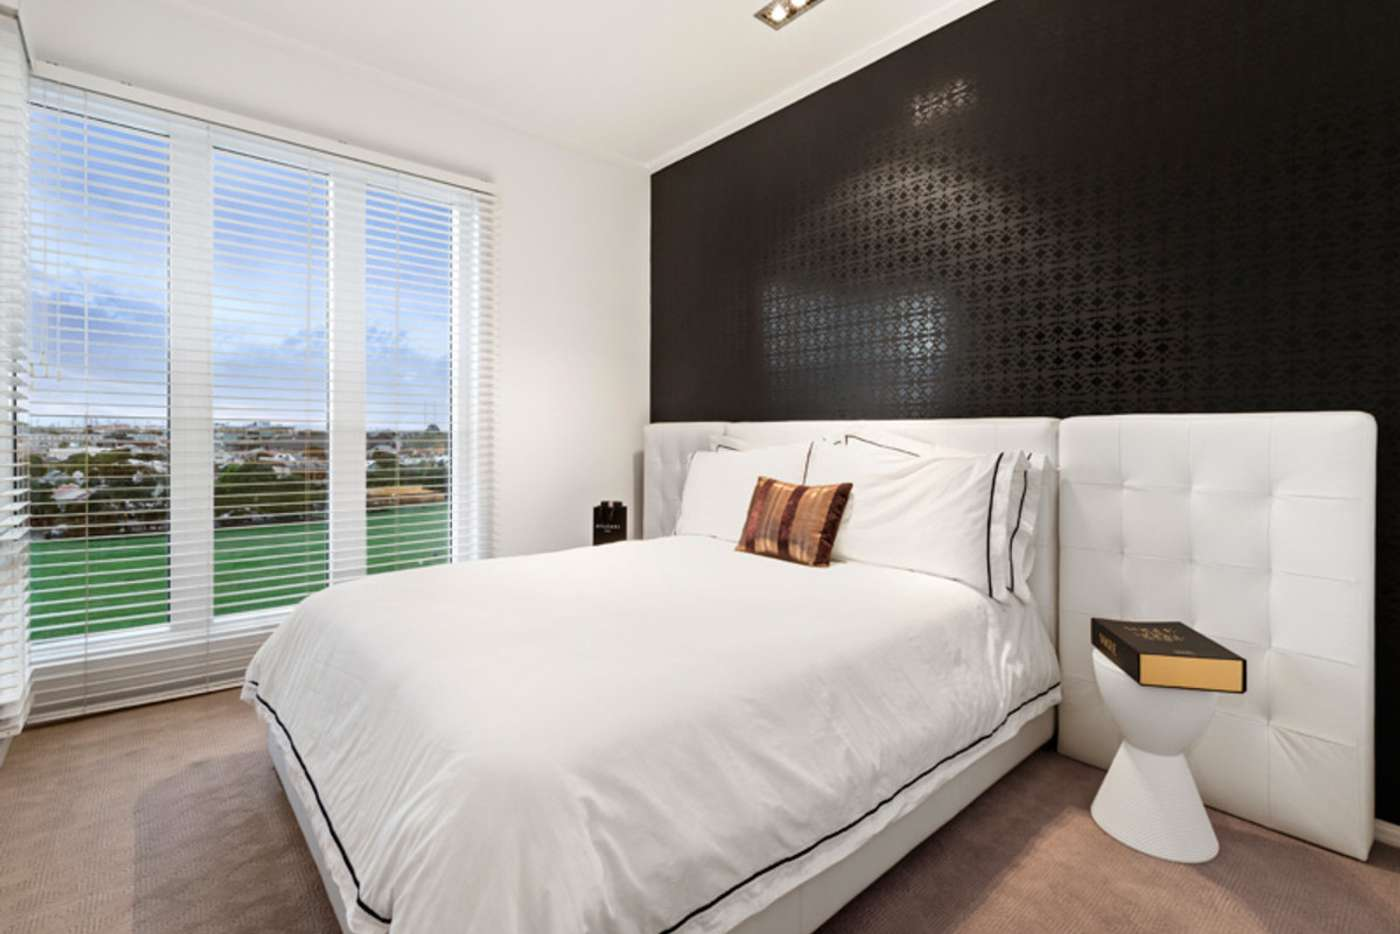 Fifth view of Homely apartment listing, 33/8 Graham Street, Port Melbourne VIC 3207